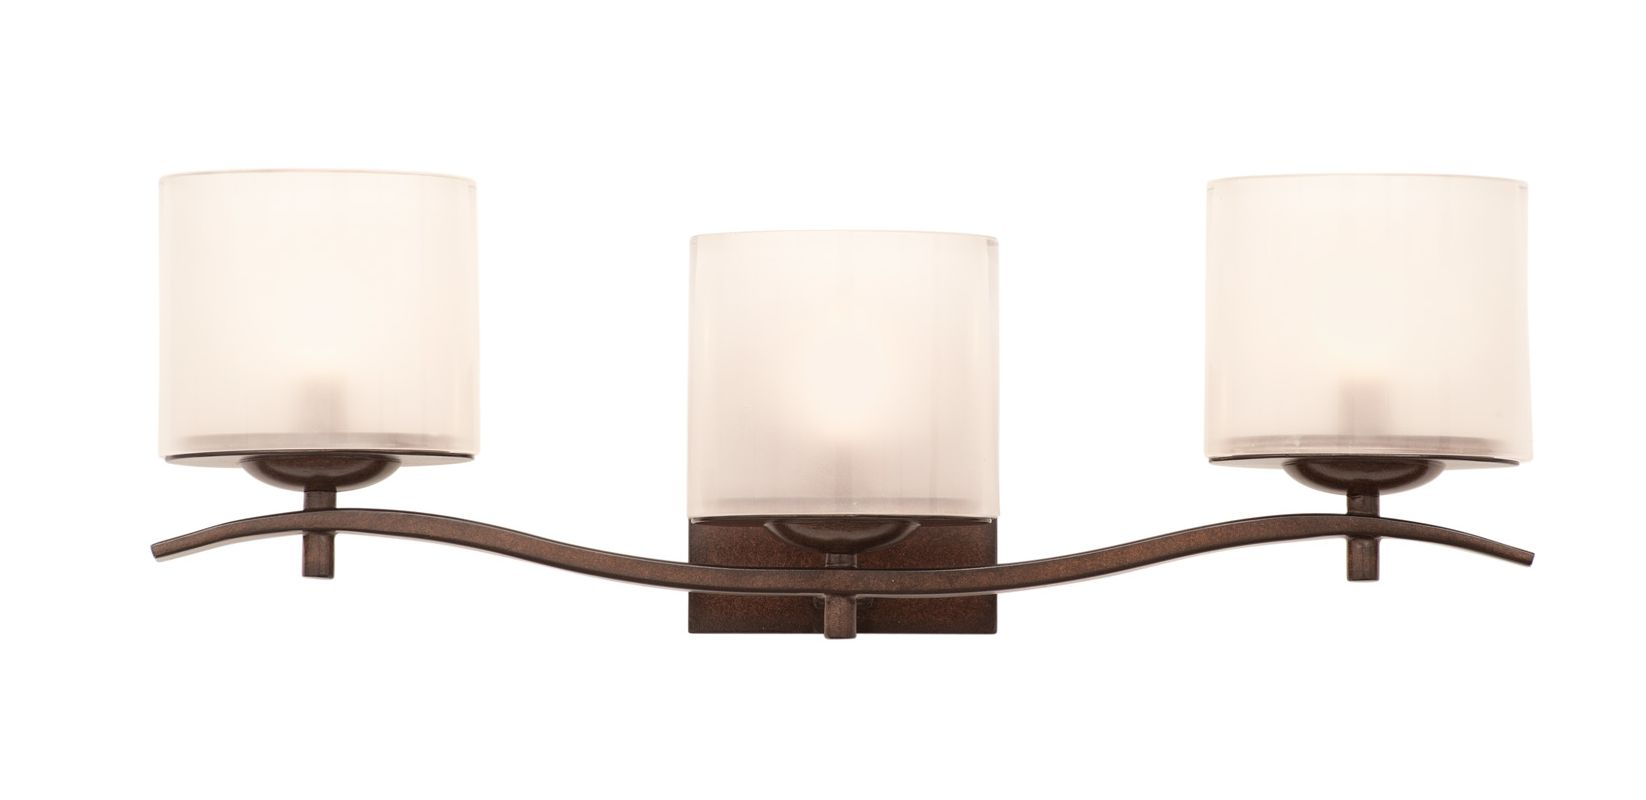 Kalco 2993TN Stapleford 3 Light Bathroom Vanity Light Tuscan Sun Sale $278.00 ITEM: bci2591776 ID#:2993TN UPC: 720062031124 :